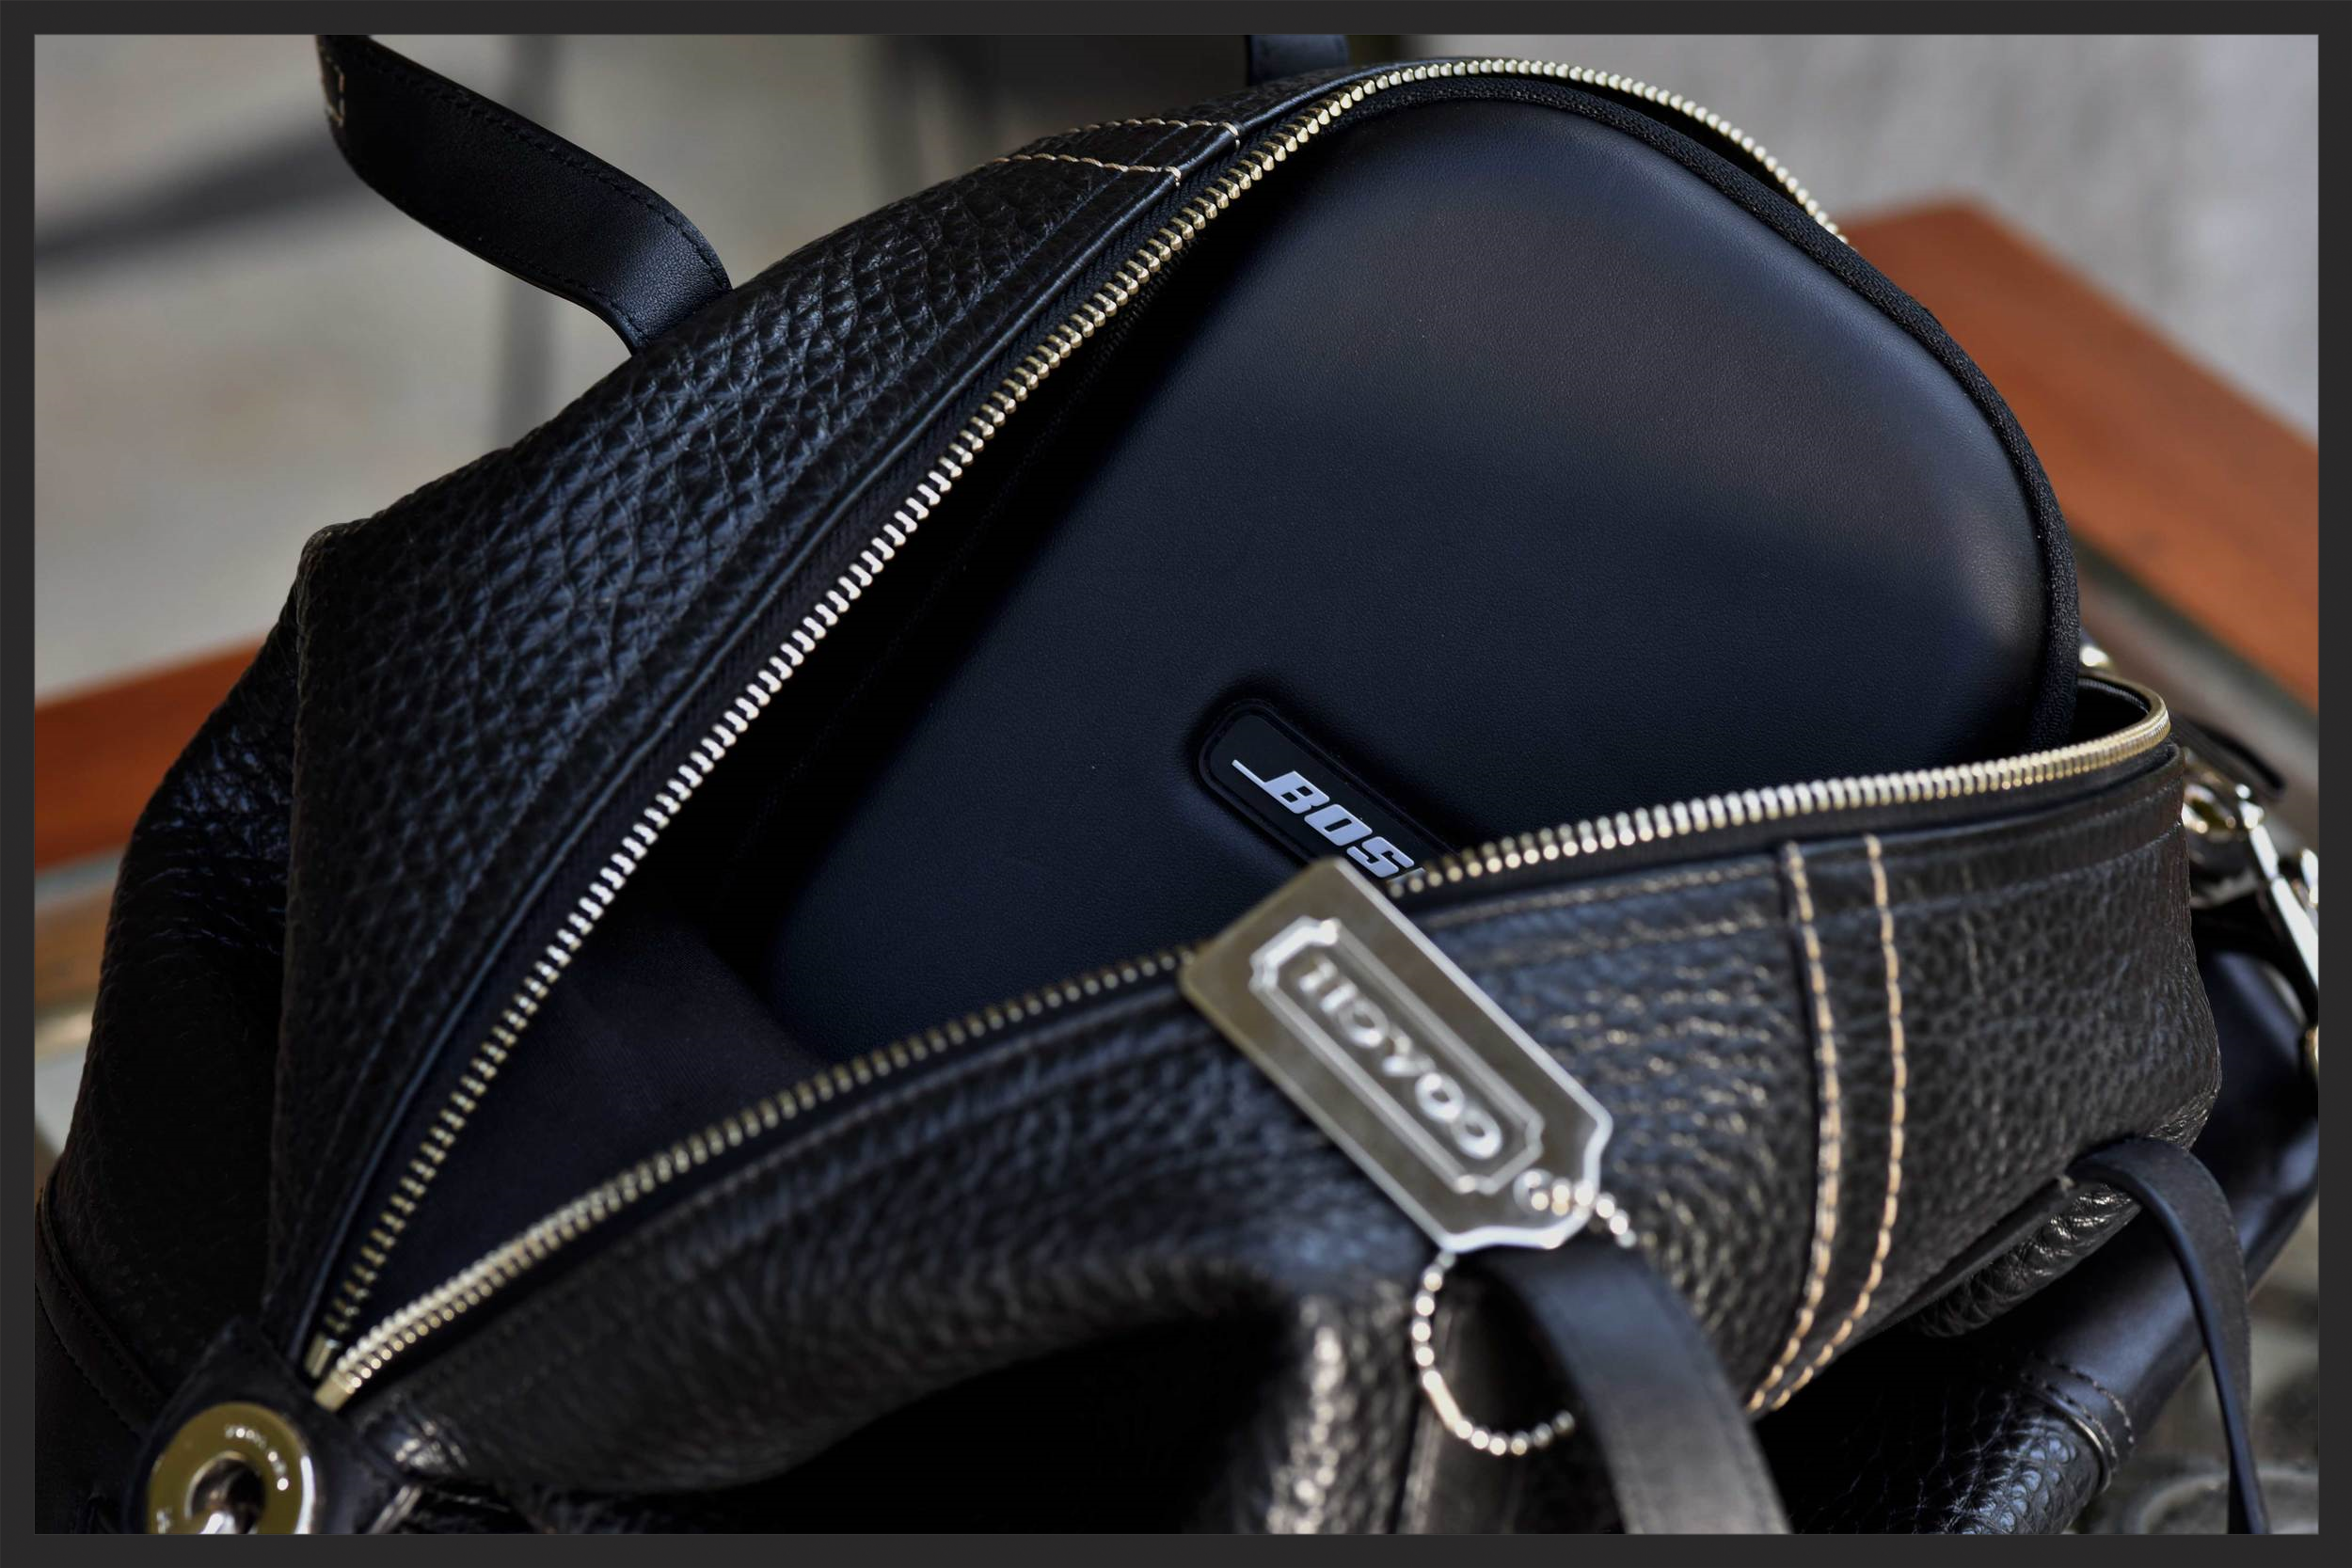 My Coach Satchel with Bose Headphone. Image©sourcingstyle.com